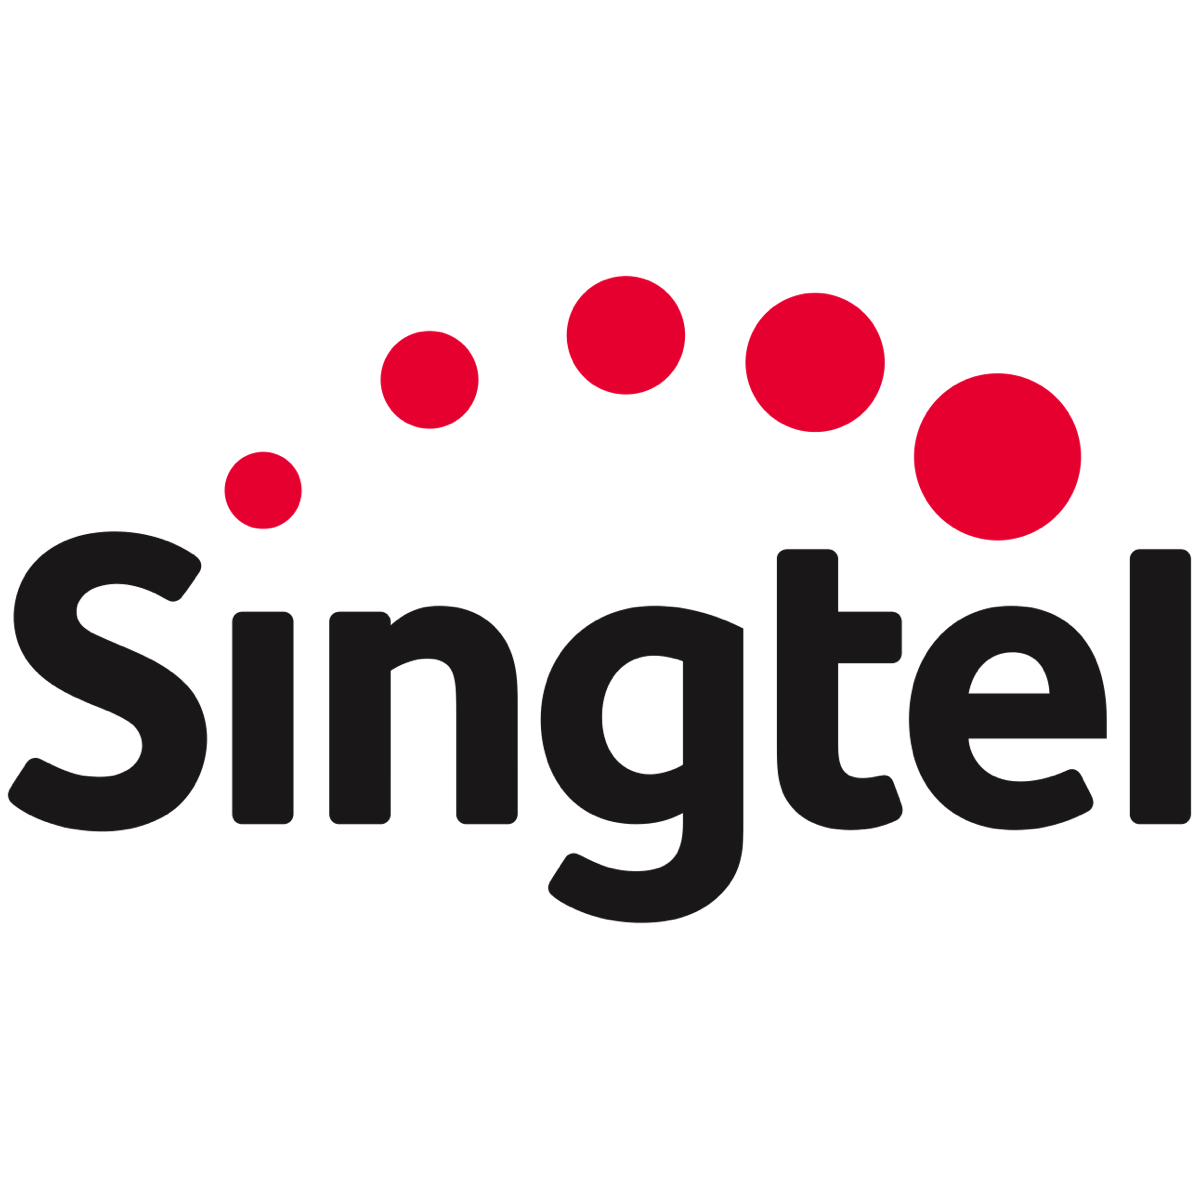 SingTel - Maybank Kim Eng 2018-06-18: Inception